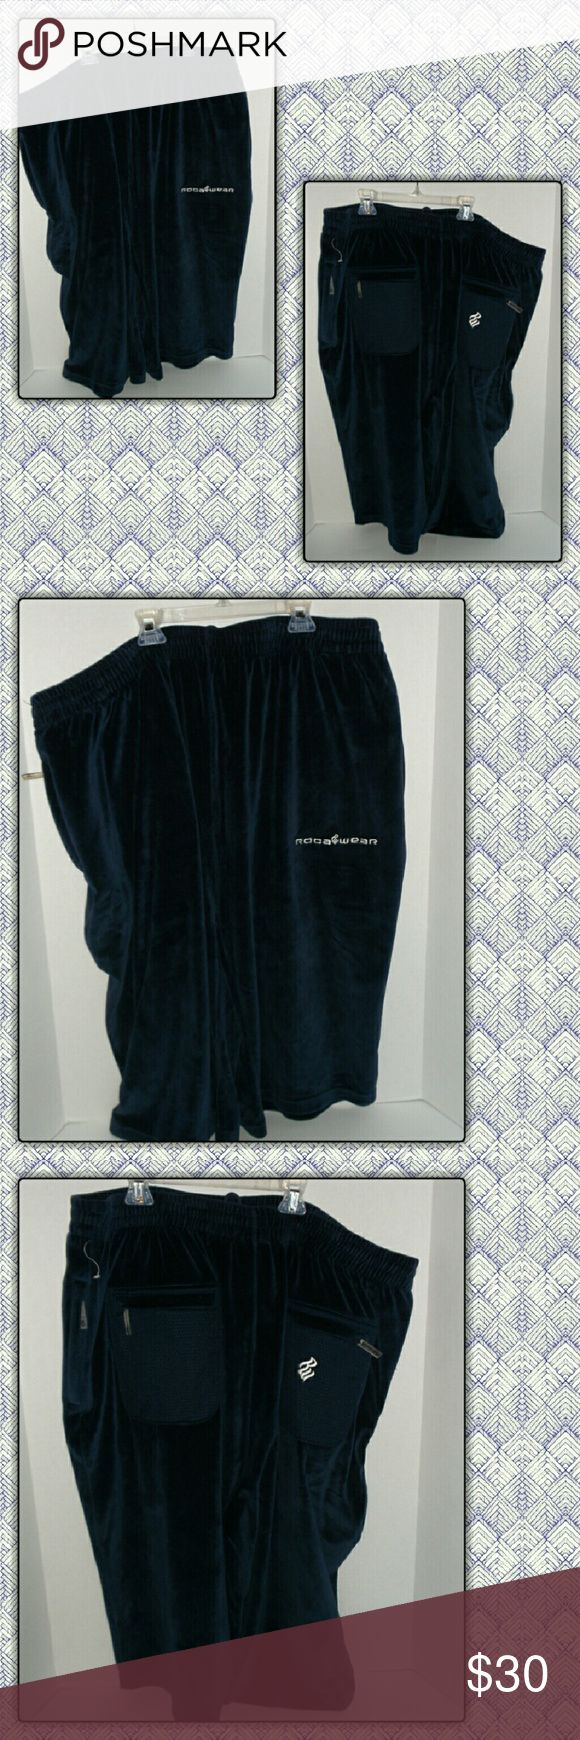 Men's Roca Wear velour shorts NWOT men's rocawear velour shorts. That go past the knee has plenty of pockets Rocawear Shorts